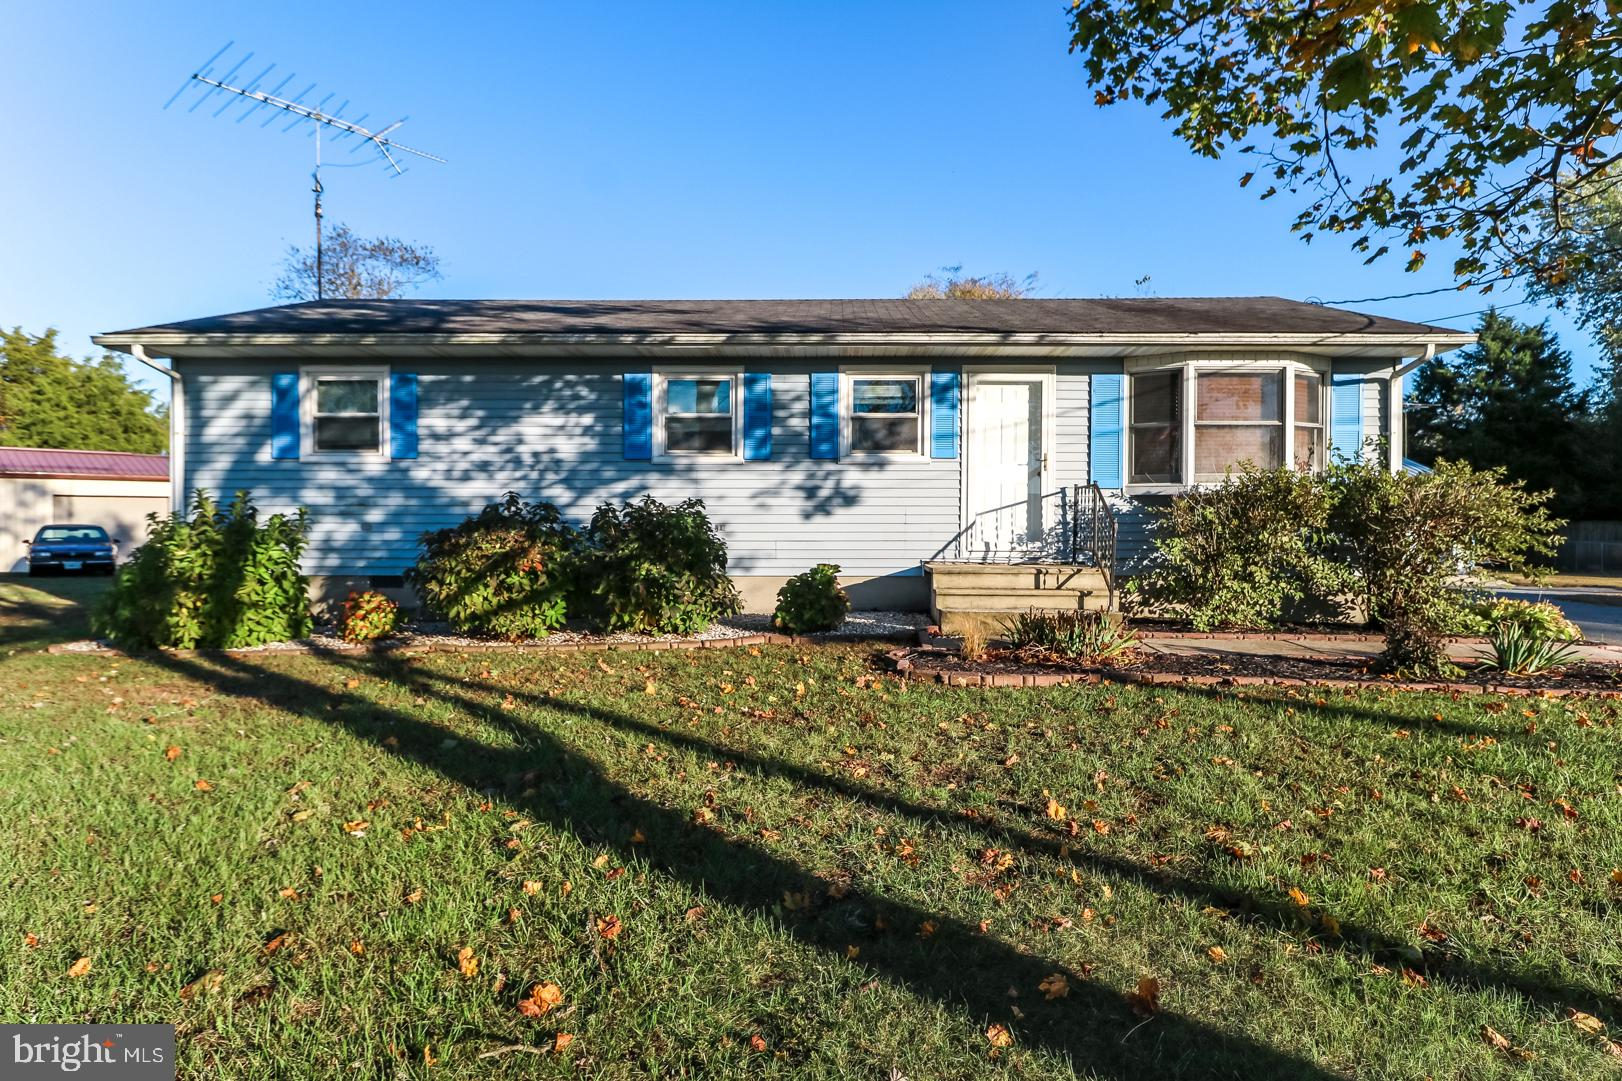 Cute little 3 bedroom 1 bath ranch sitting on a nice size lot with a 3 car Garage. This home is move in     condition great for first time home buyer. Seller is Motivated